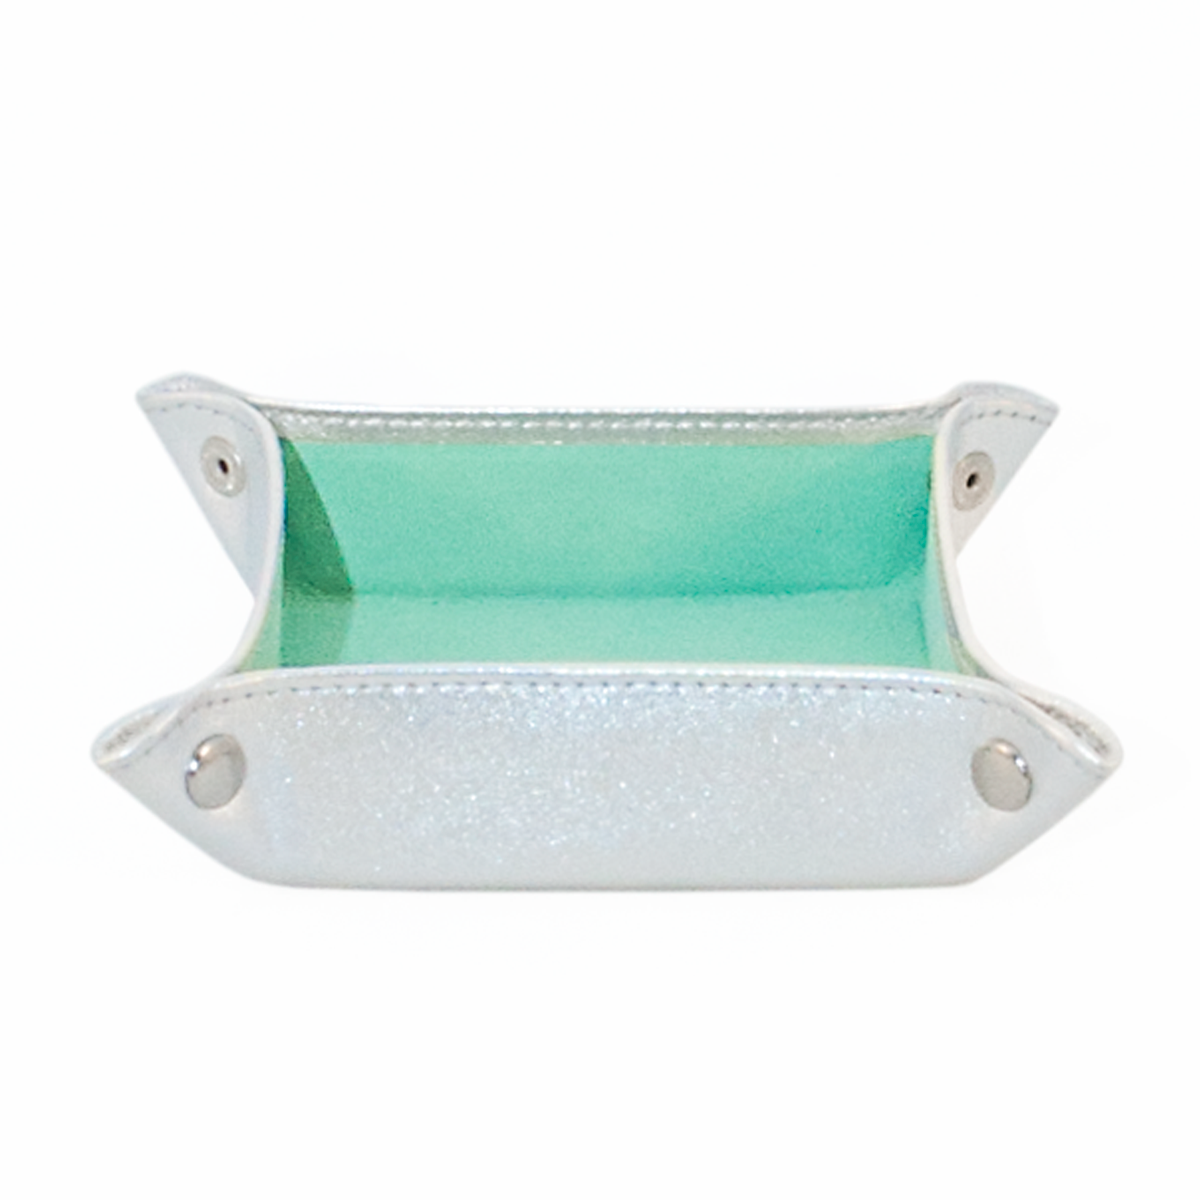 Jewellery Tray Silver Turquoise